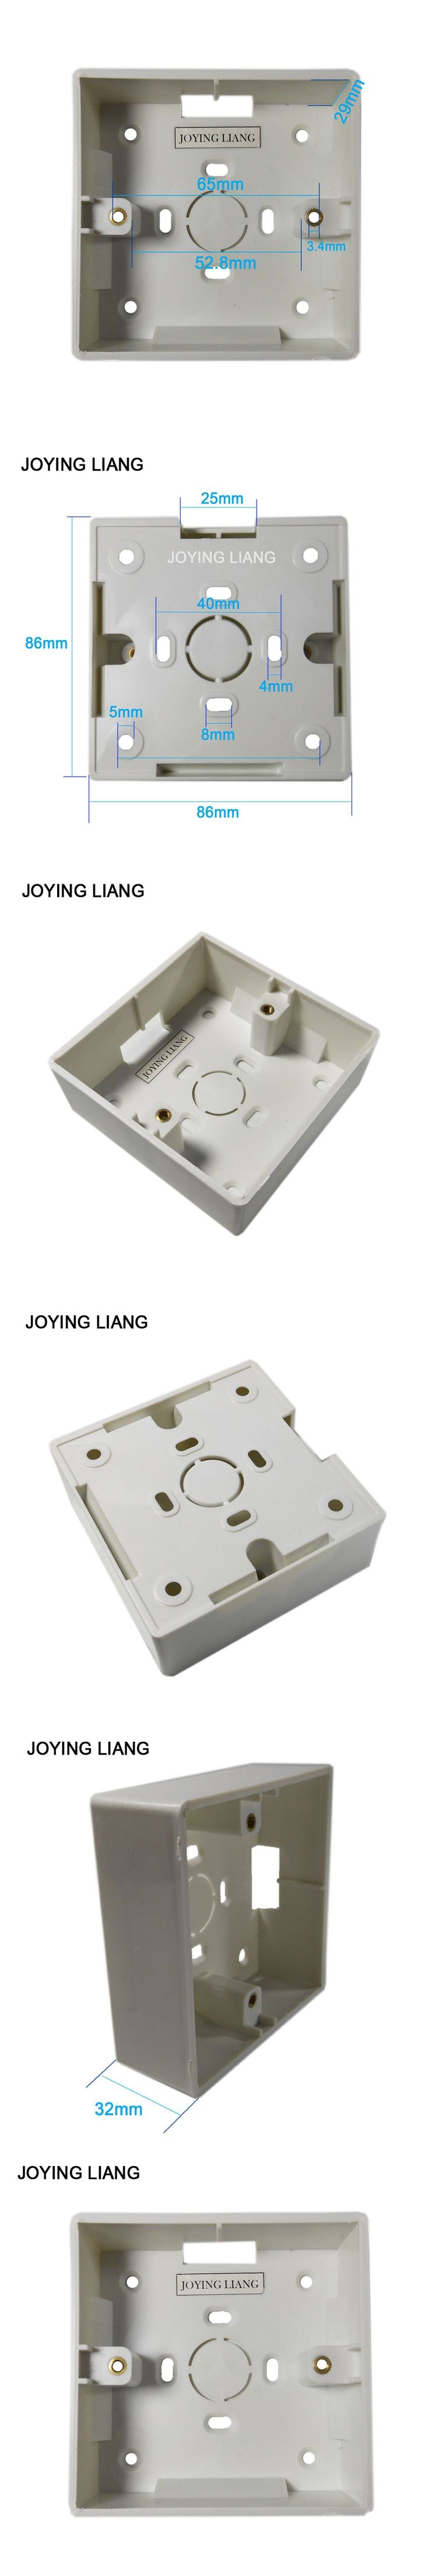 Commonly Used PVC 86mm Exposed Socket Junction Box Visible Wall Electricity Wire Basic Box Connector Switch Socket Height 32mm